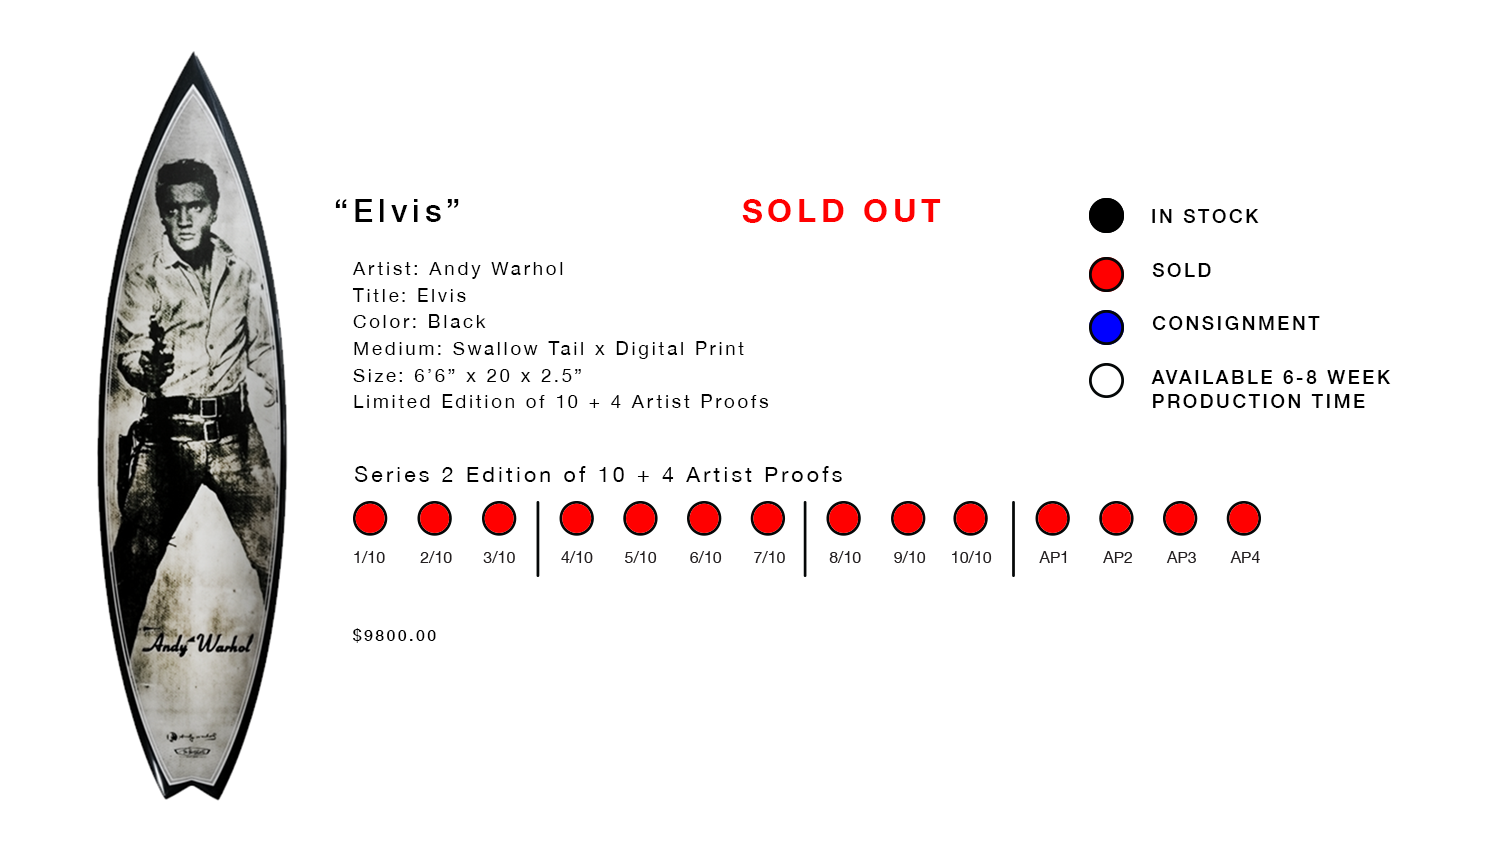 ELVIS_AVAIL.png